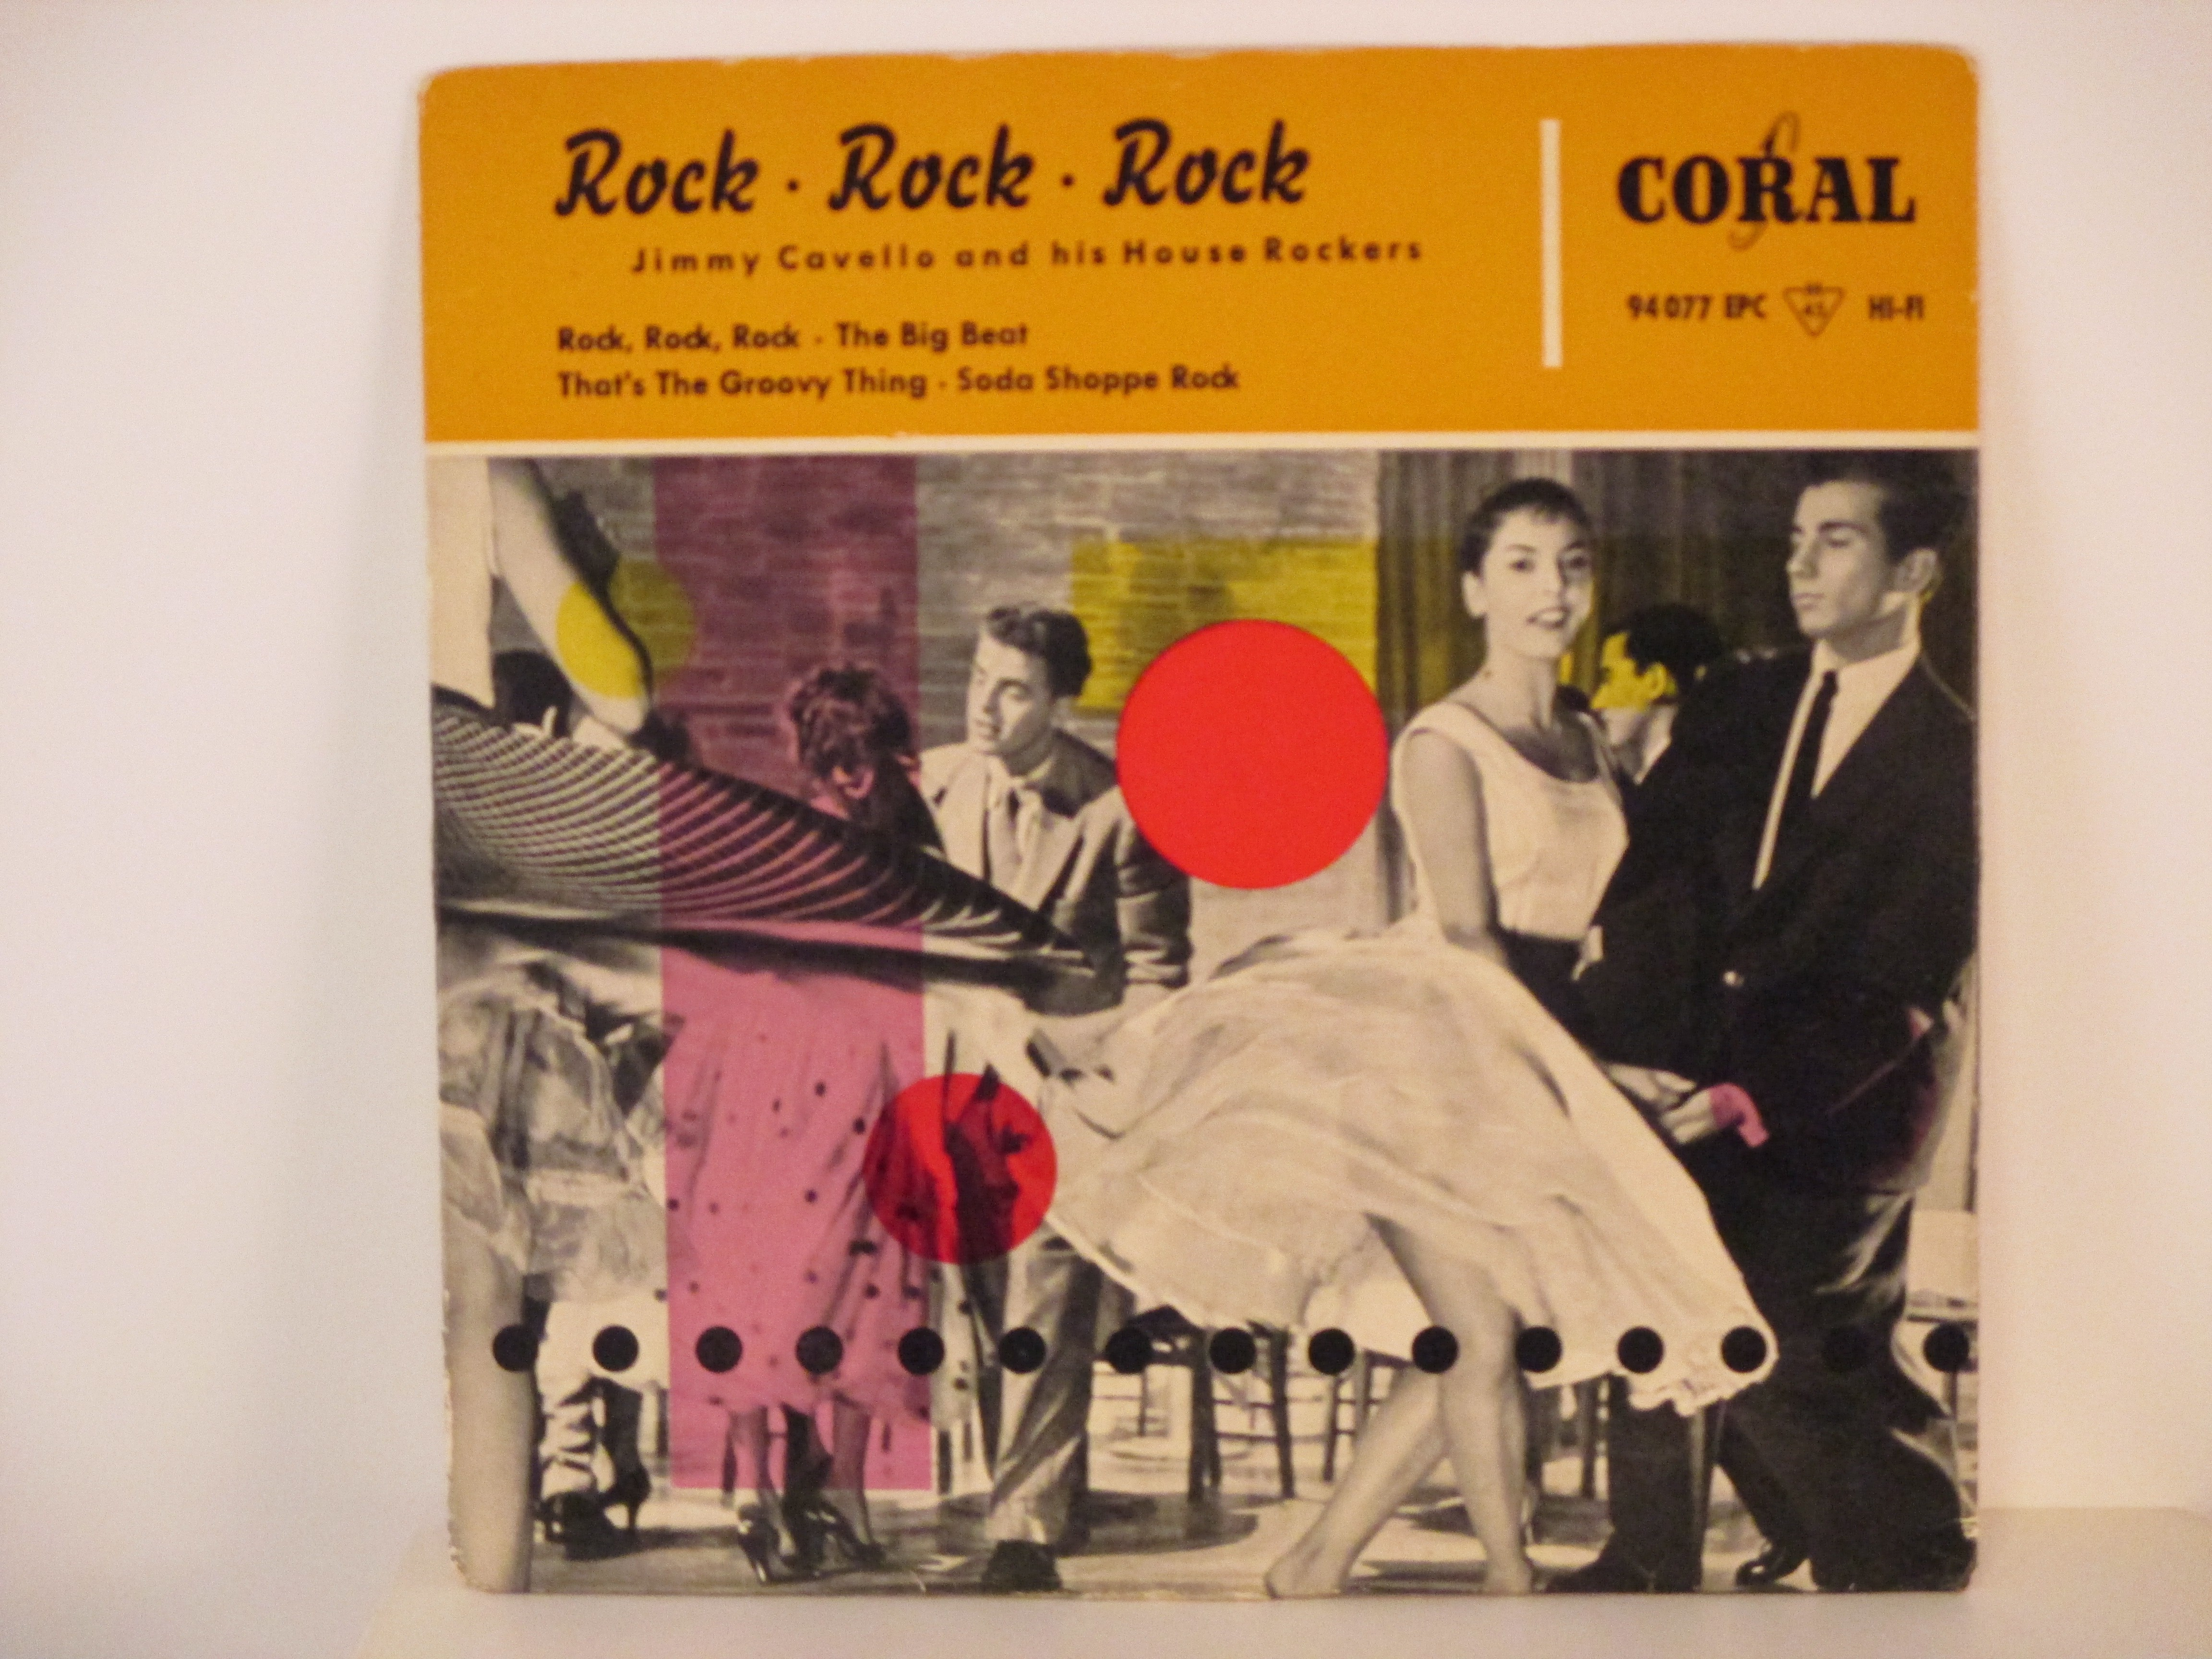 JIMMY CAVELLO & HIS HOUSE ROCKERS : (EP) Rock, Rock, Rock / The big beat / That's the groovy thing / Soda shoppe Rock